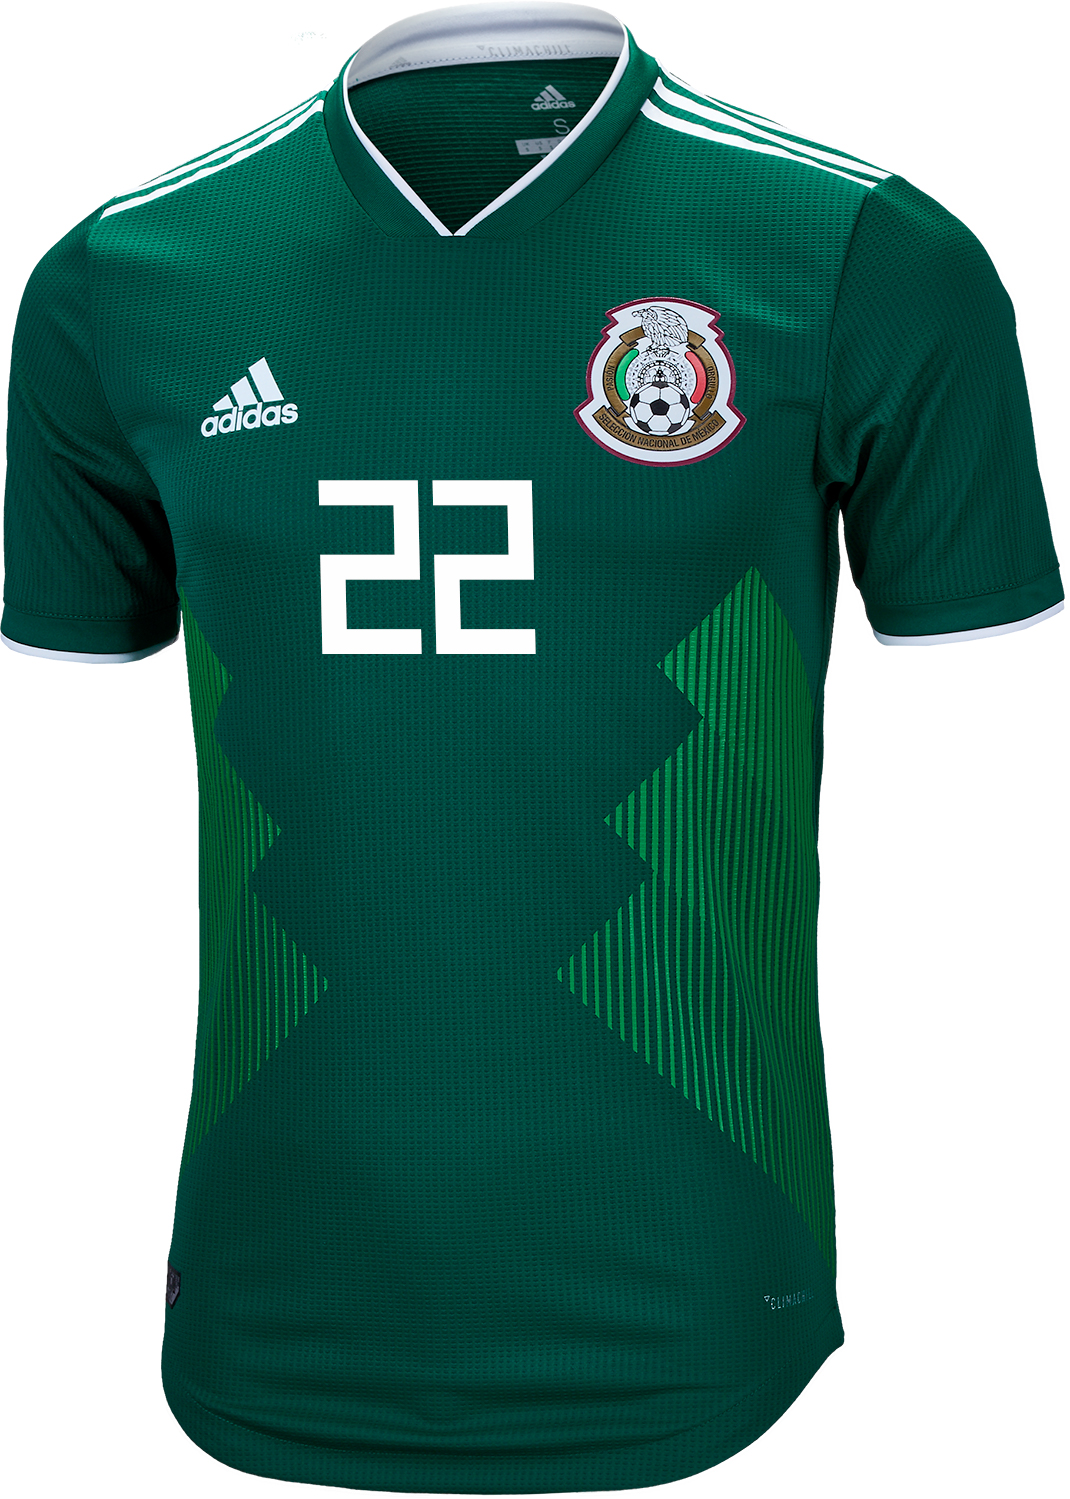 142bcdd68 2018 19 adidas Hirving Lozano Mexico Authentic Home Jersey - SoccerPro